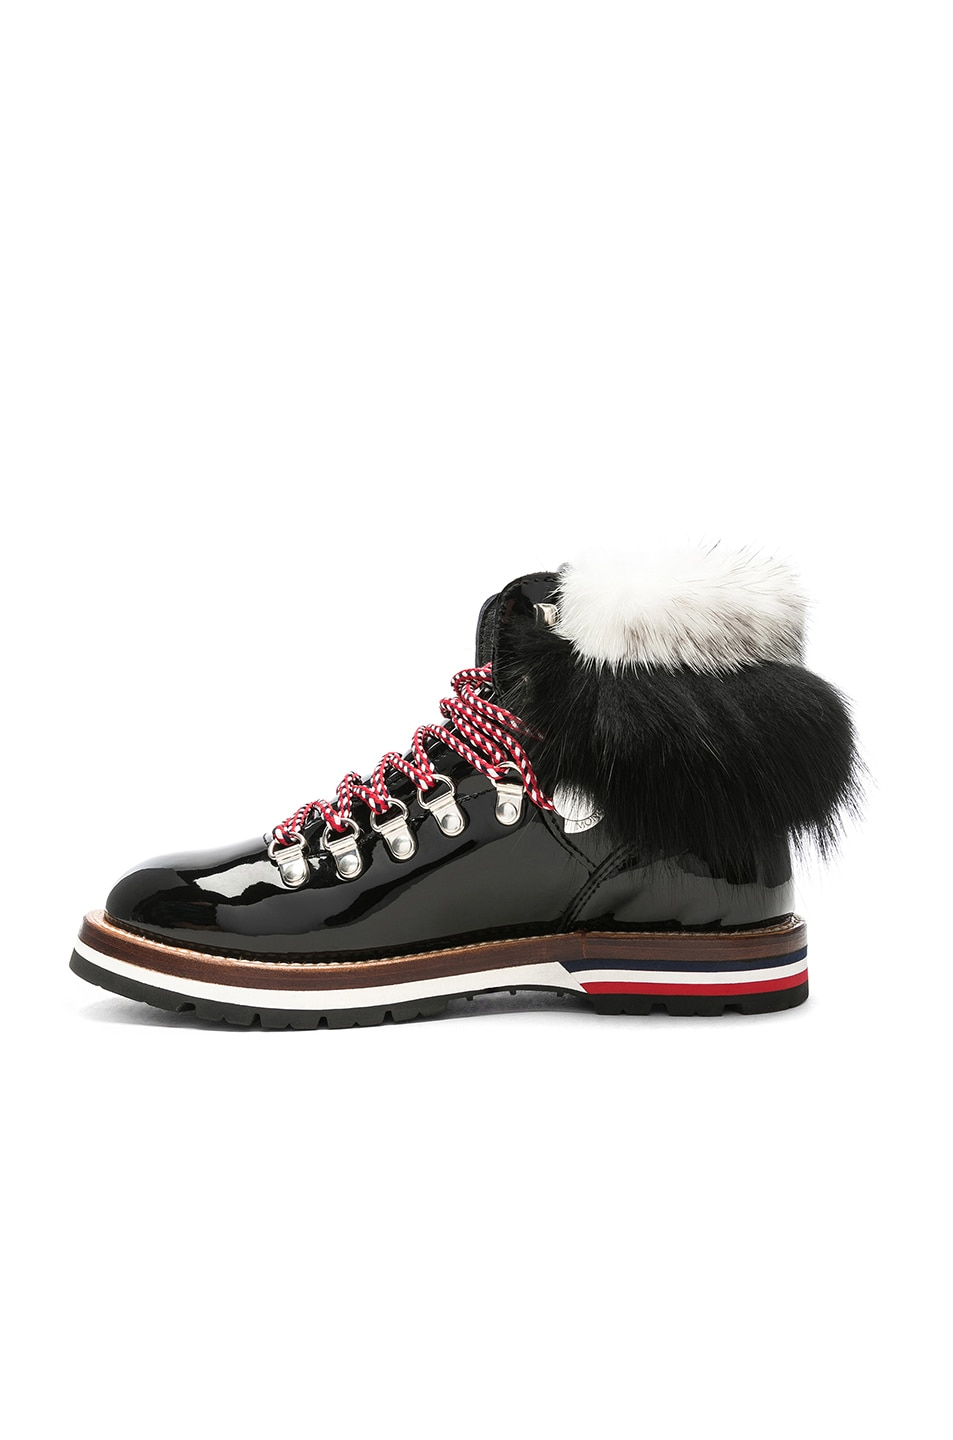 Image 5 of Moncler Patent Leather Solange Scarpa Boots With Mink Fur in Black